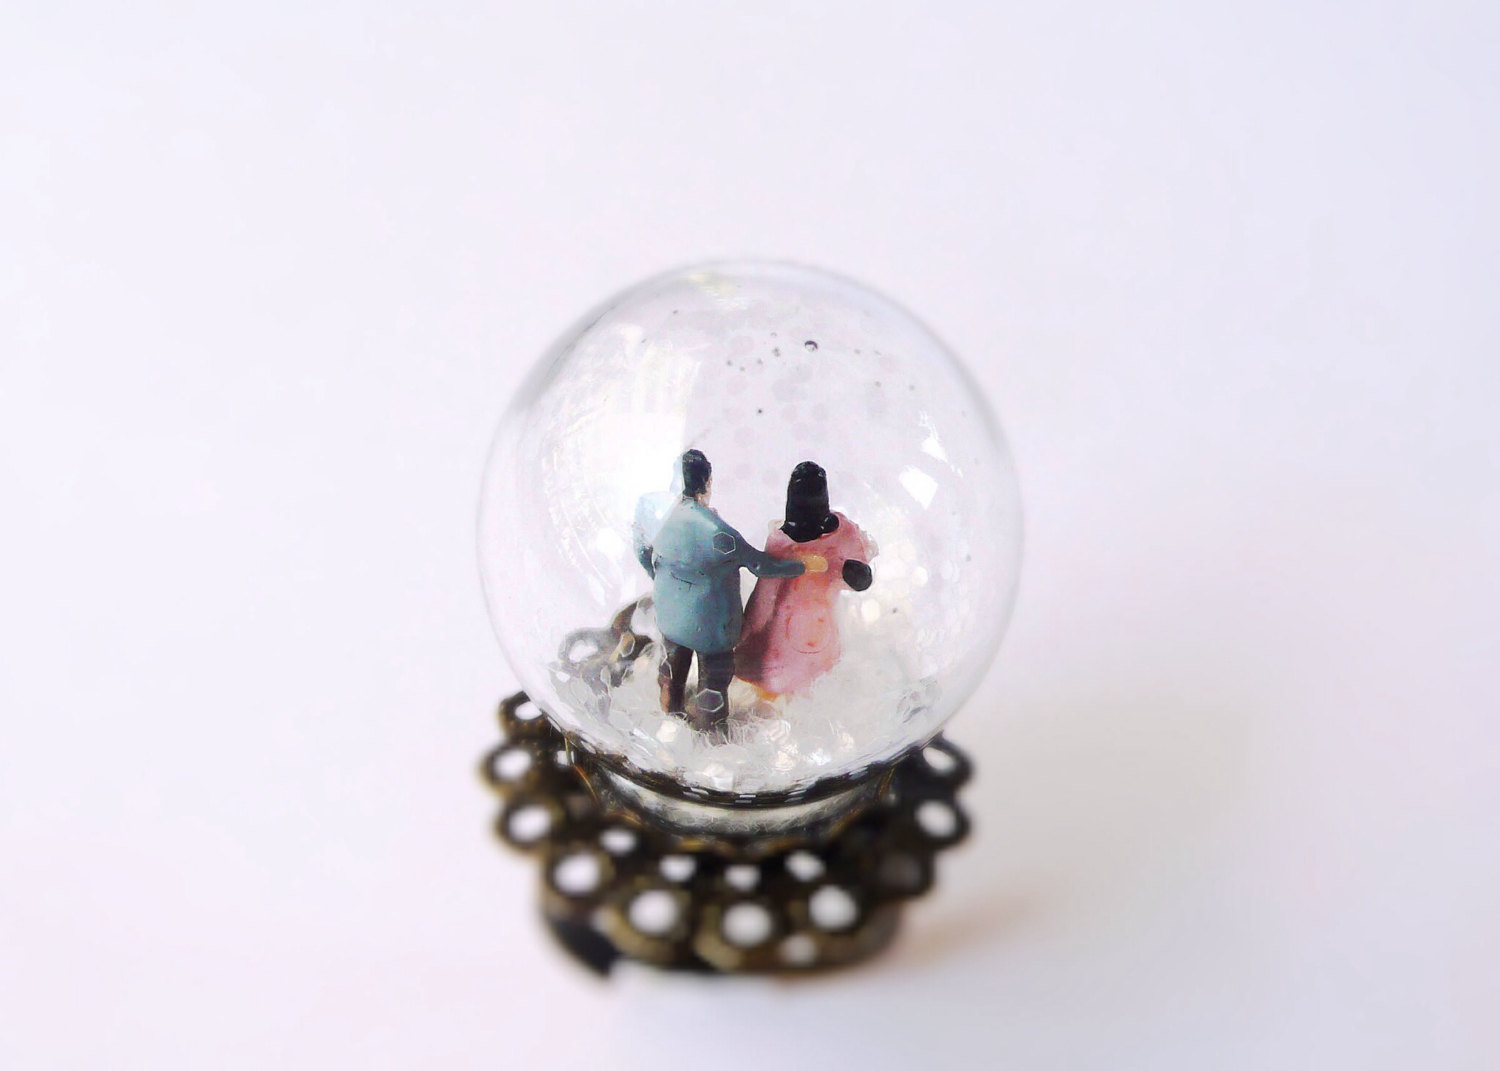 People Walking While Snowing Ring